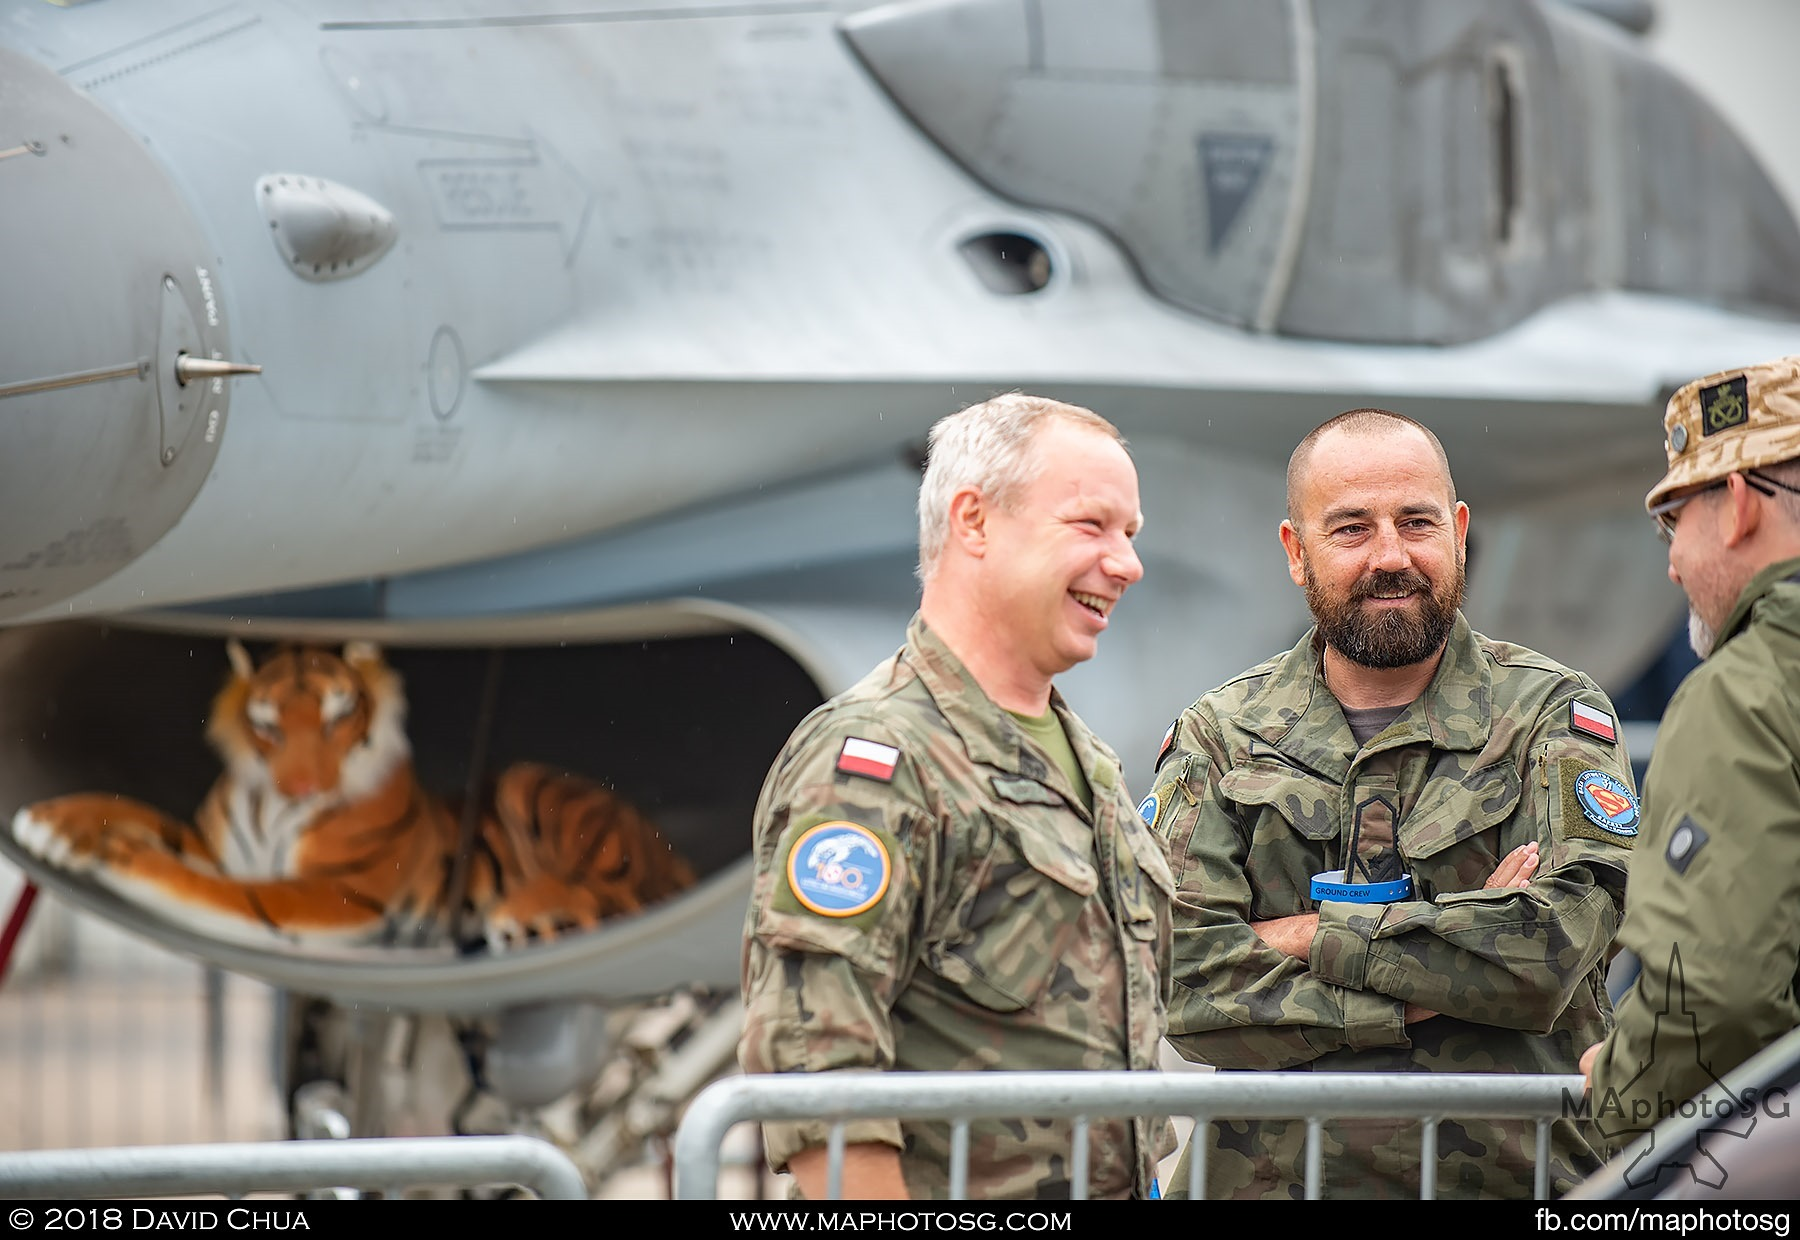 05. Crew of the Polish Air Force F-16 Tiger Demo Team engages the public at the static display